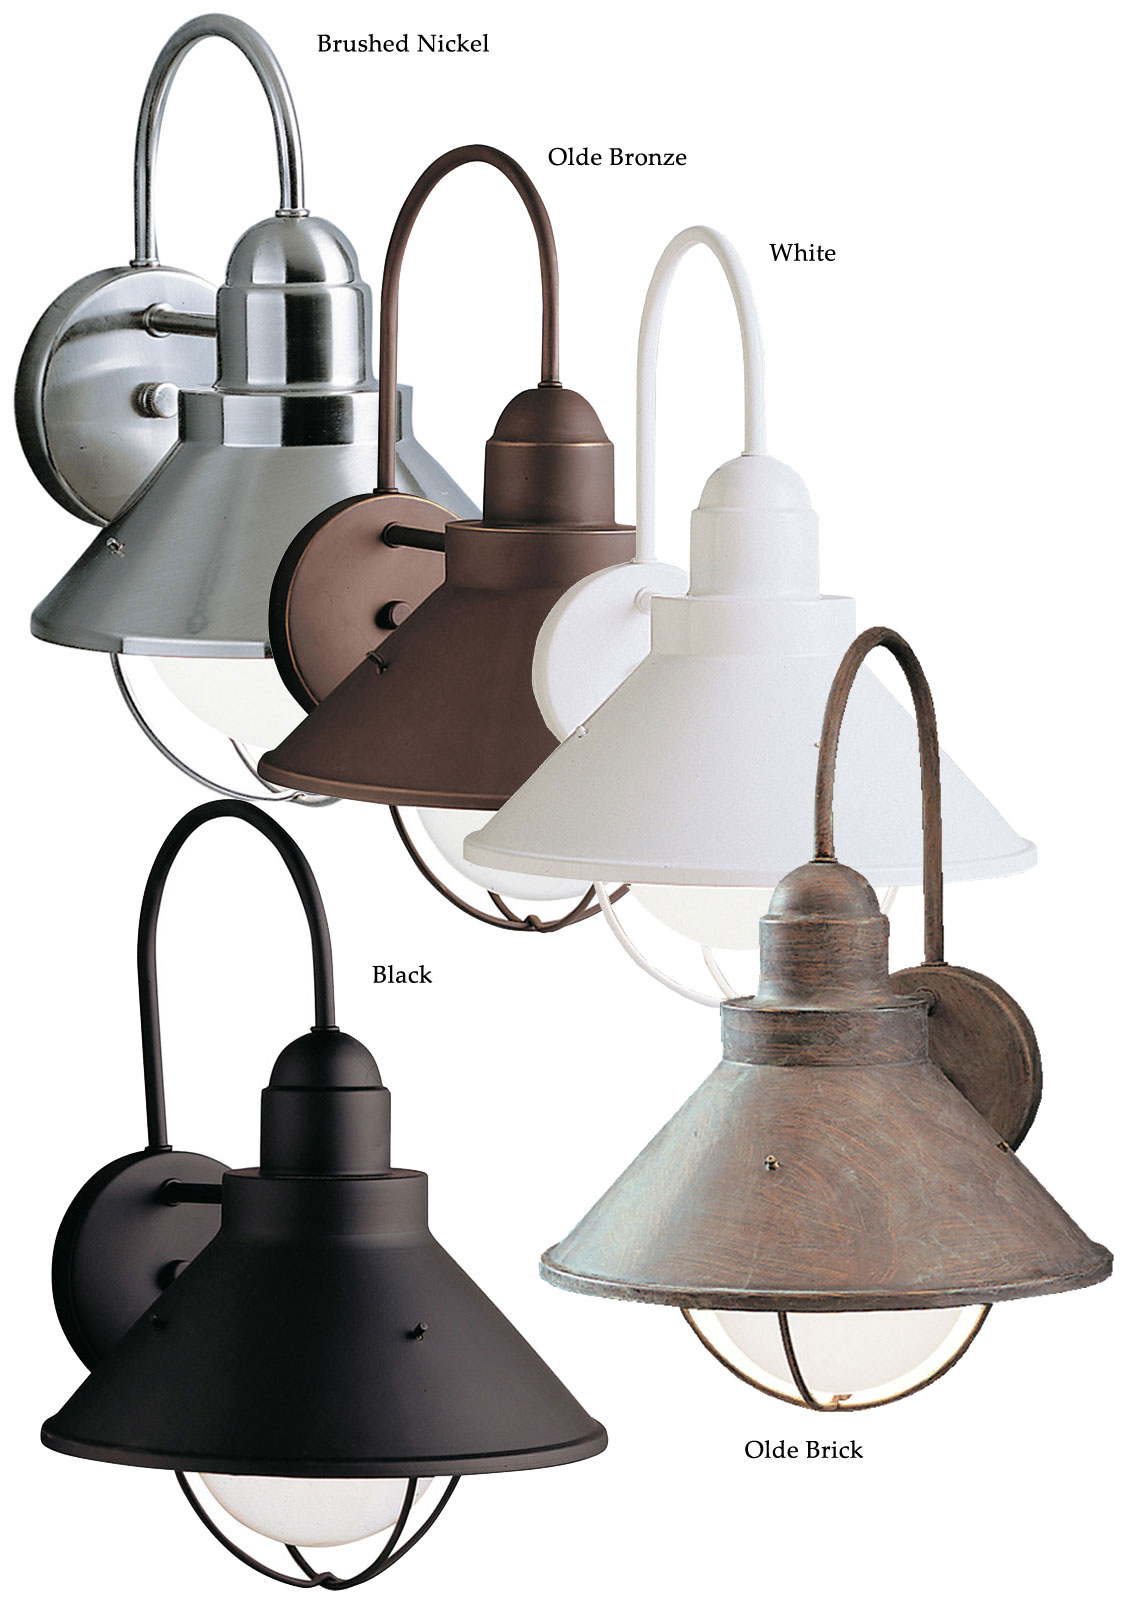 price outdoor pendants lamp beach for sale floor glass wheels nautical table on style wall sconce indoor nursery lighting sconces lamps buffet piece per discount themed